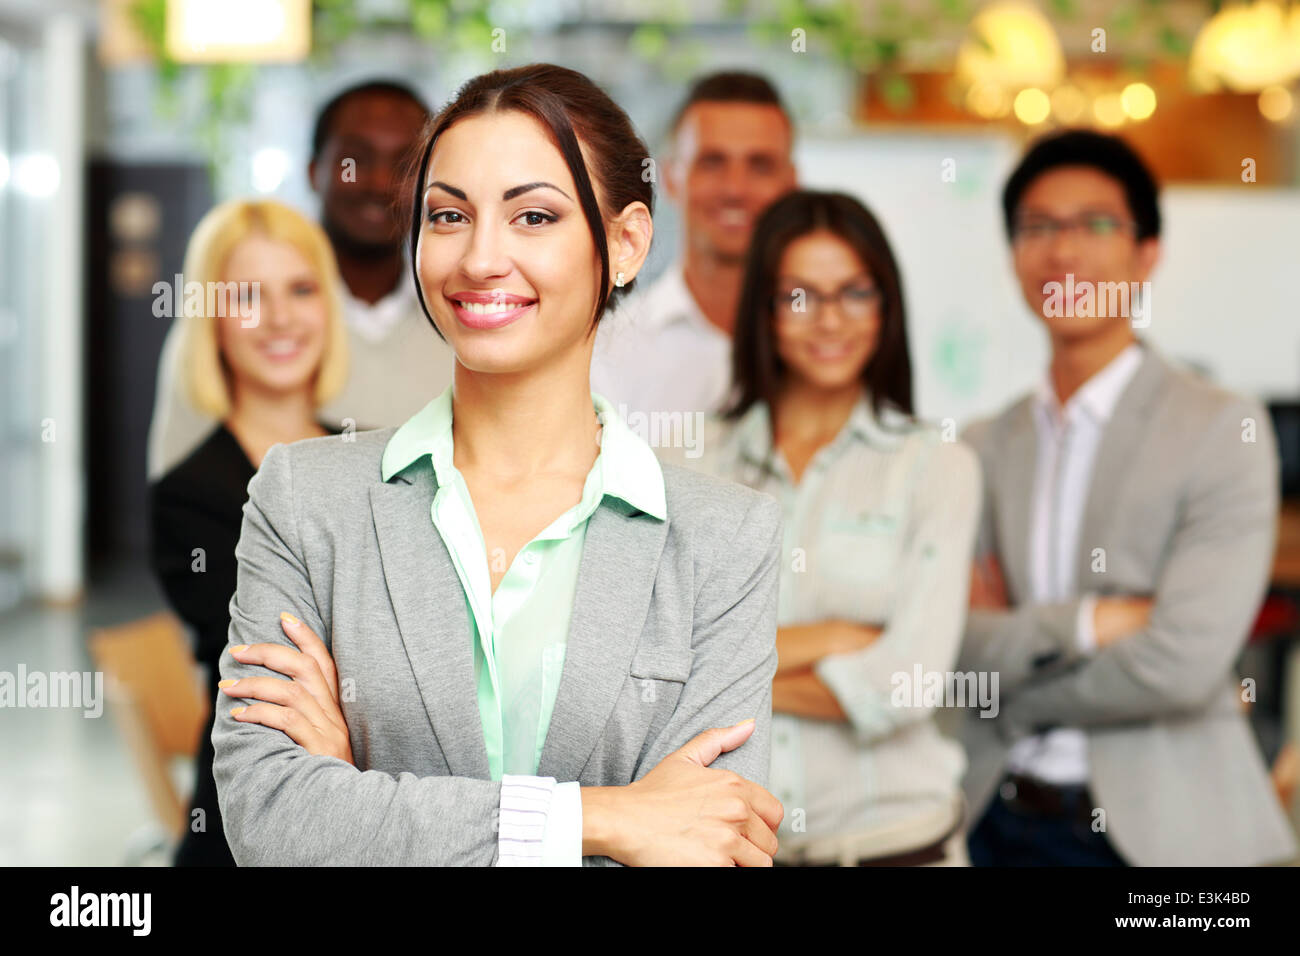 Cheerful group of co-workers standing in office - Stock Image